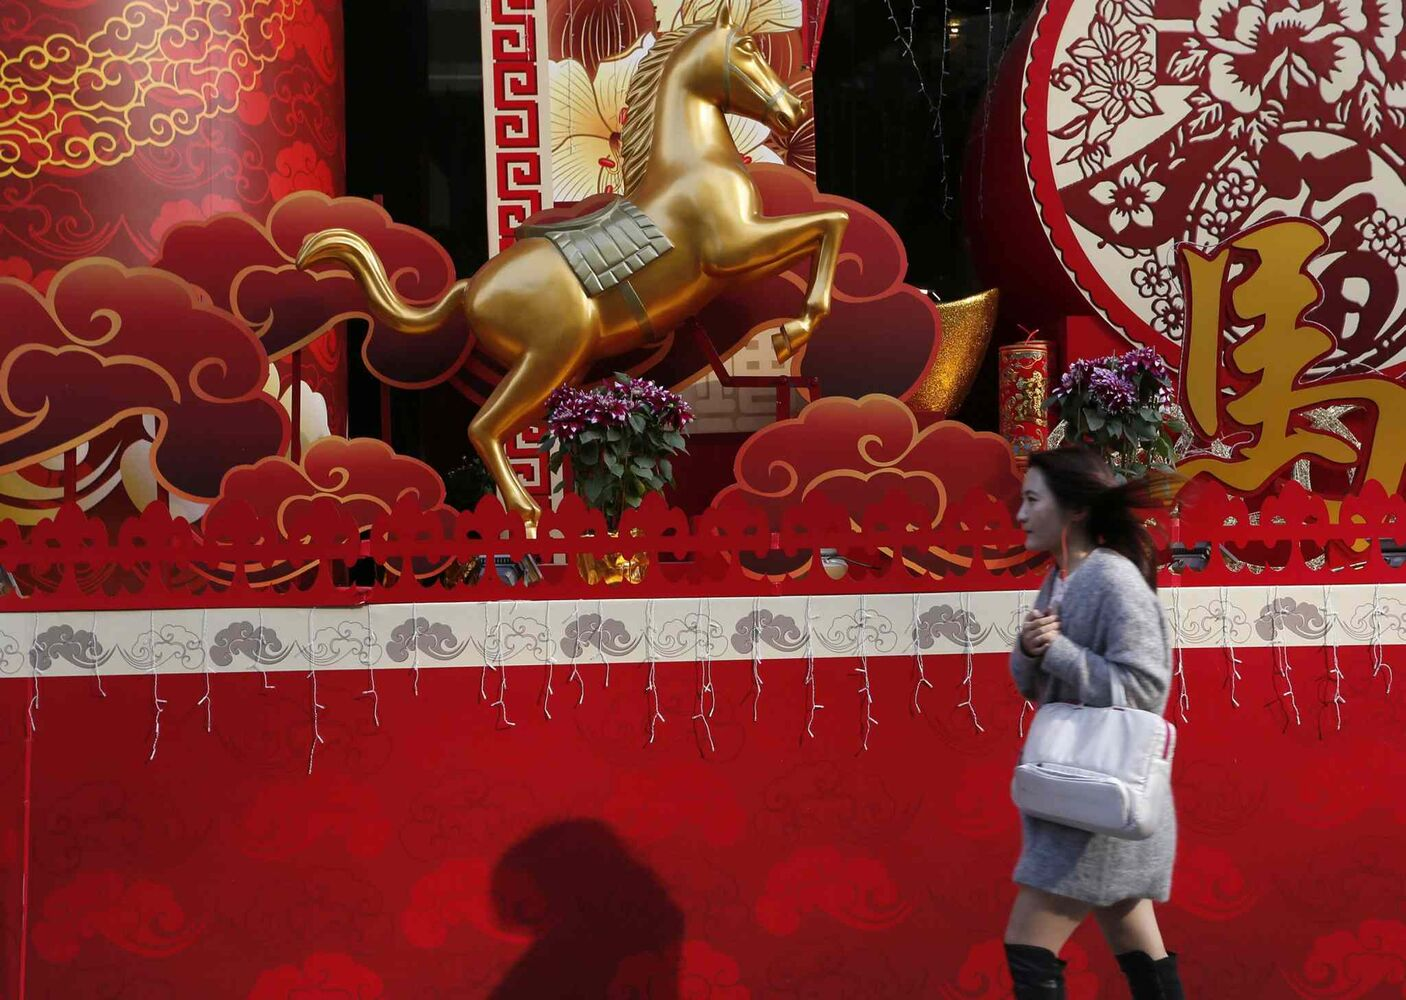 In this Monday, Jan. 27, 2014 photo, Chinese New Year decorations with a golden horse are displayed outside a building in Hong Kong. Hong Kong expected 7.93 million visitors for New Year celebrations, more than territory's permanent population of 7.1 million.